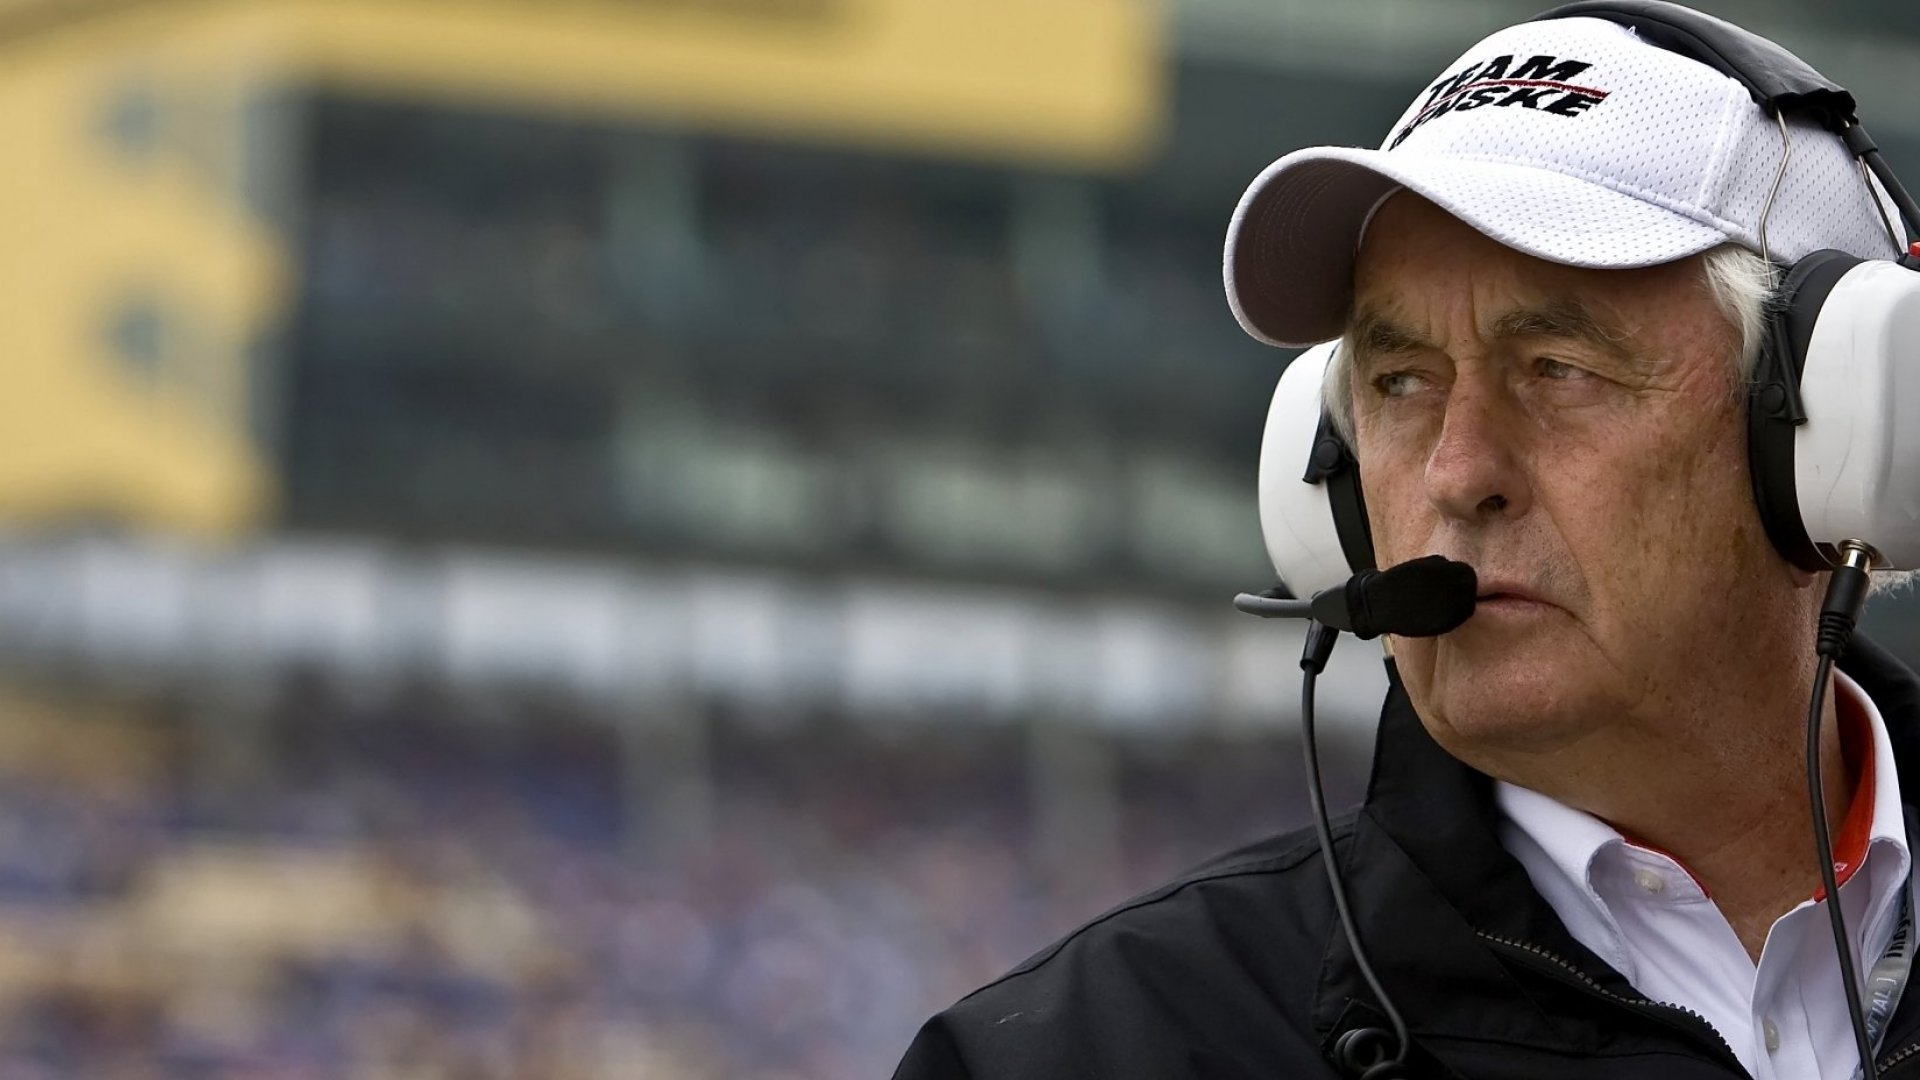 How to Turn a Loan From Your Father Into $26 Billion: an Exclusive Interview with Roger Penske